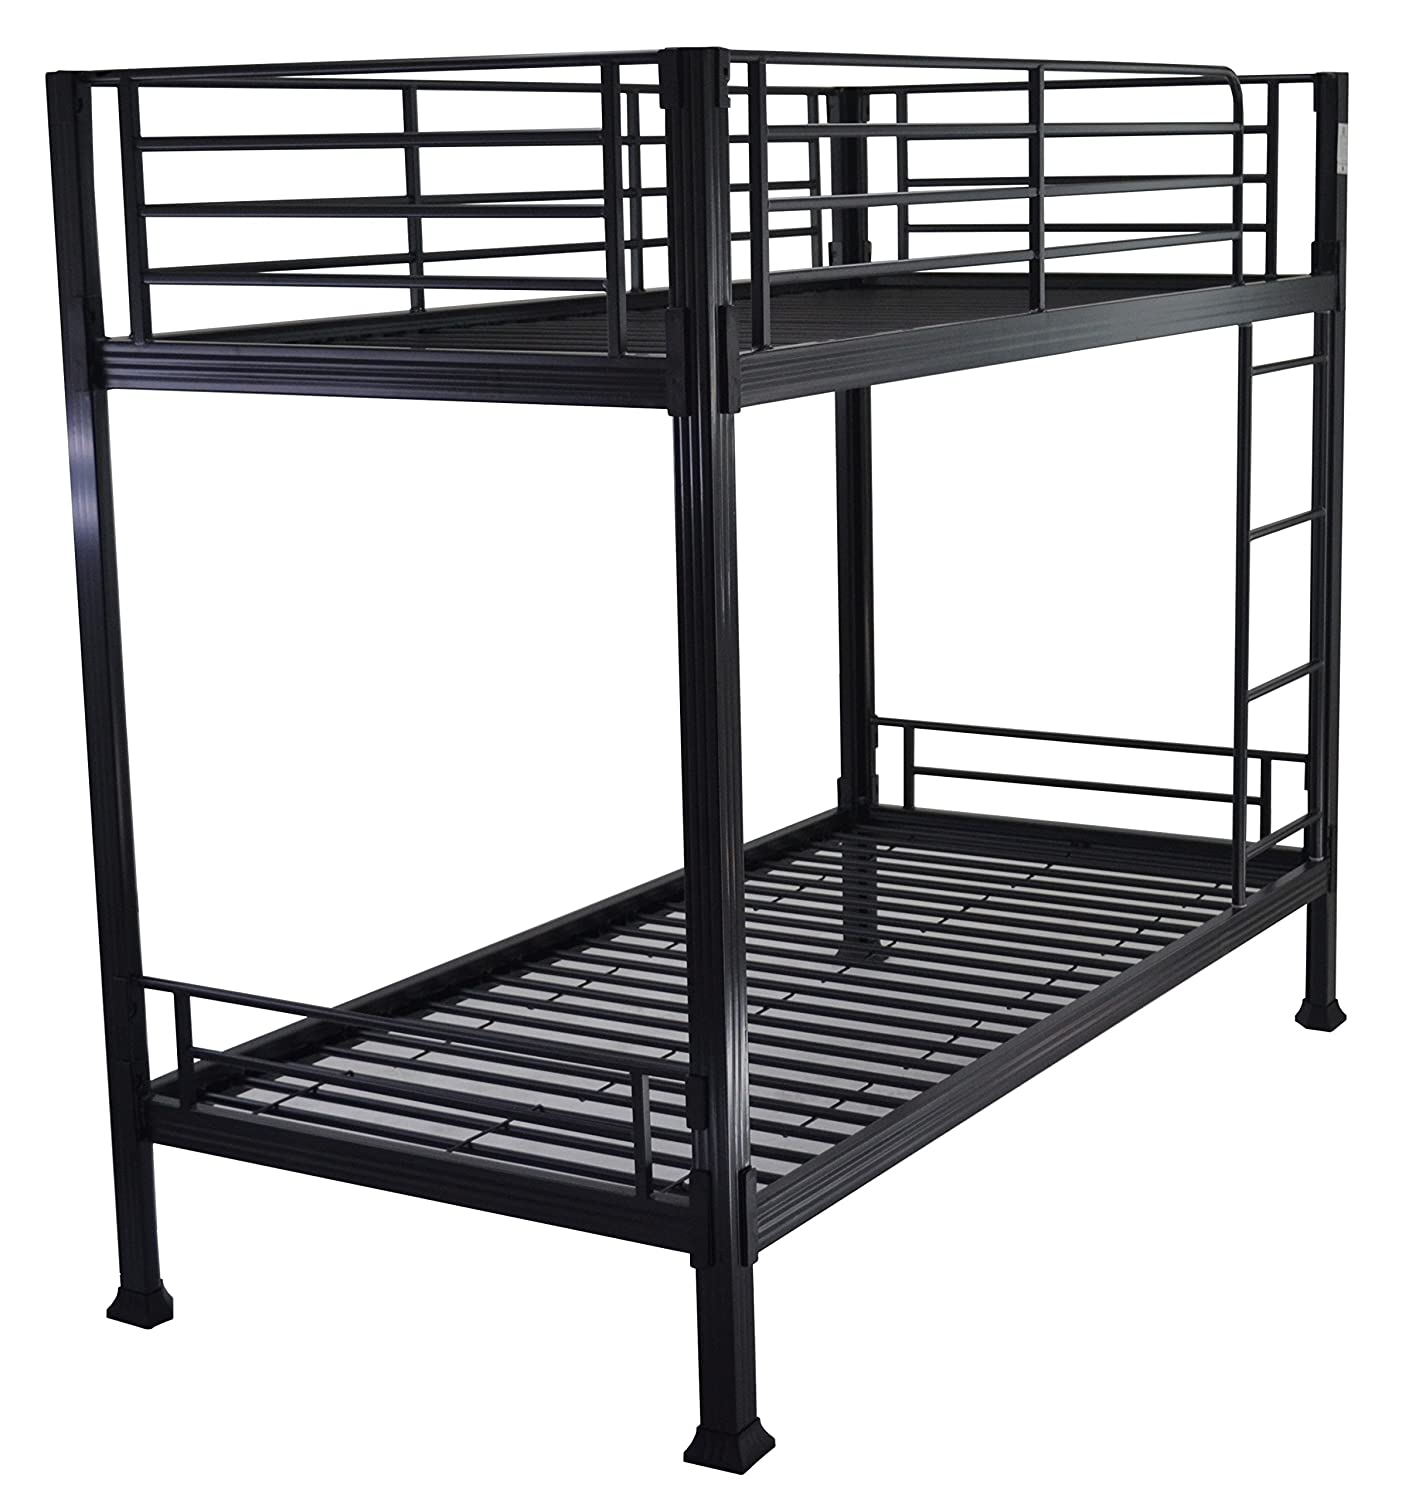 uk availability 9da1c 30148 Strictly Beds Black Bunk Bed - 3ft single metal bunkbed - Can be used by  adults - VERY STRONG